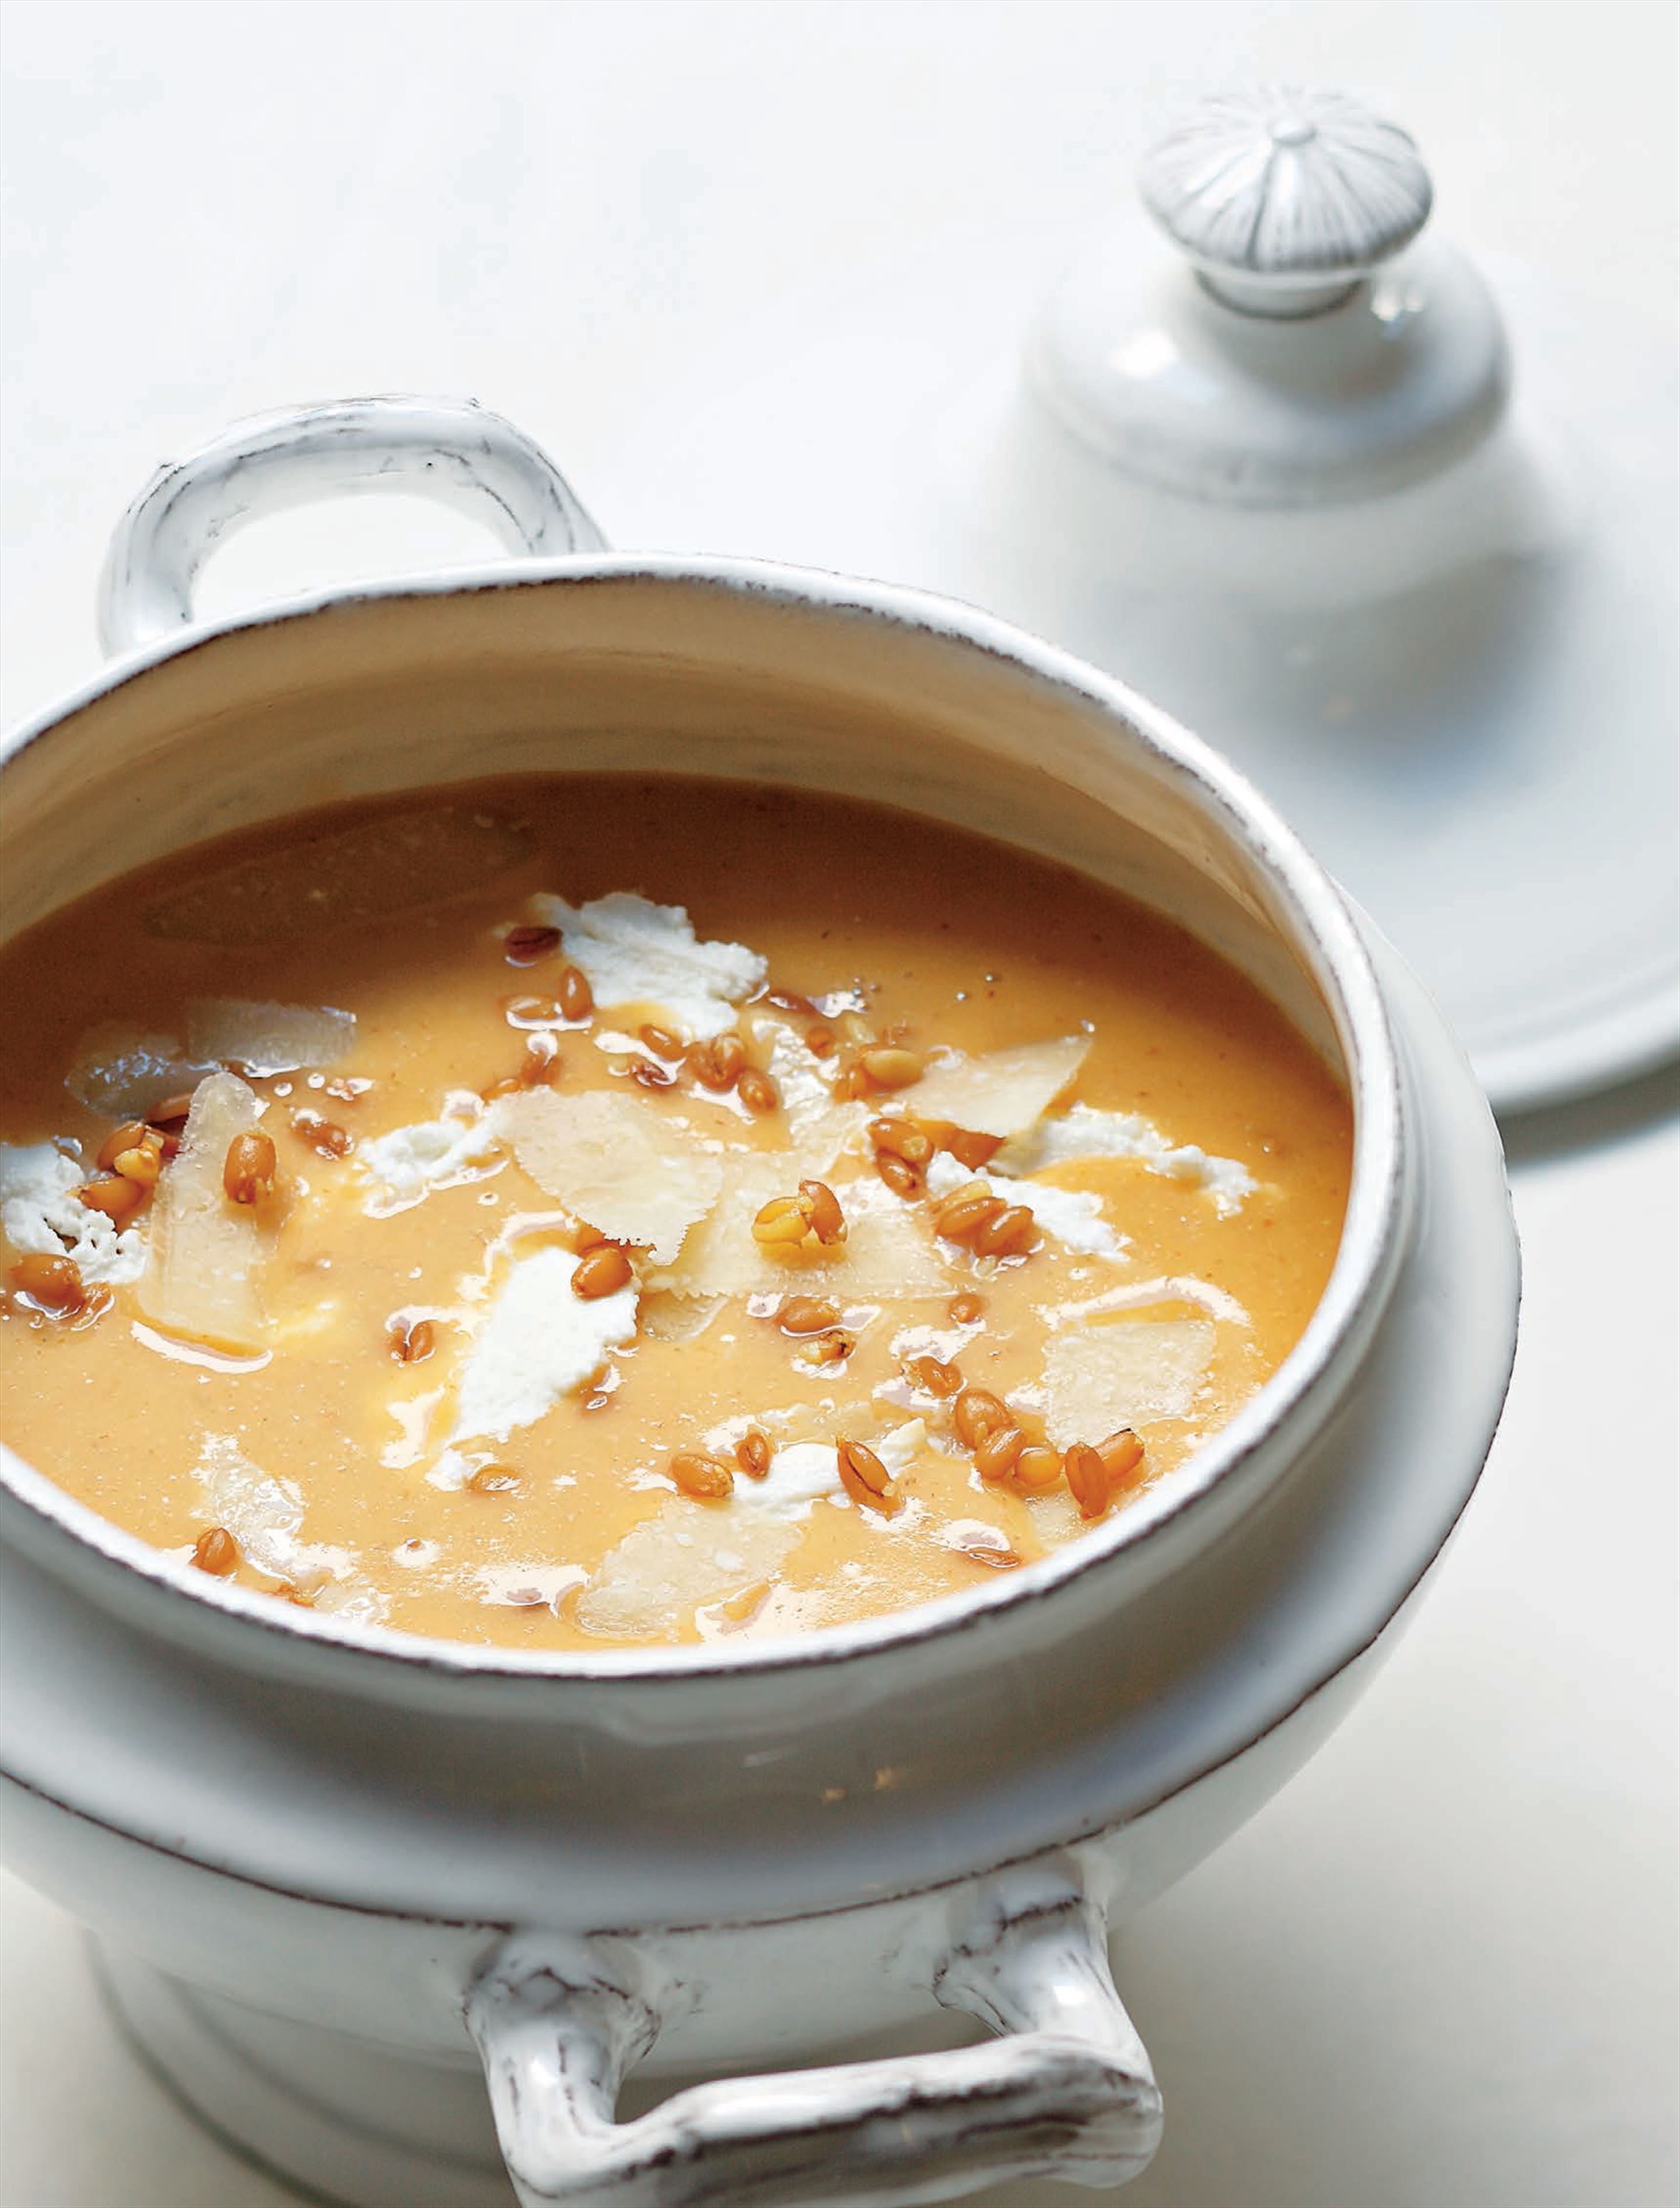 Puréed wheat and sheep's curd soup